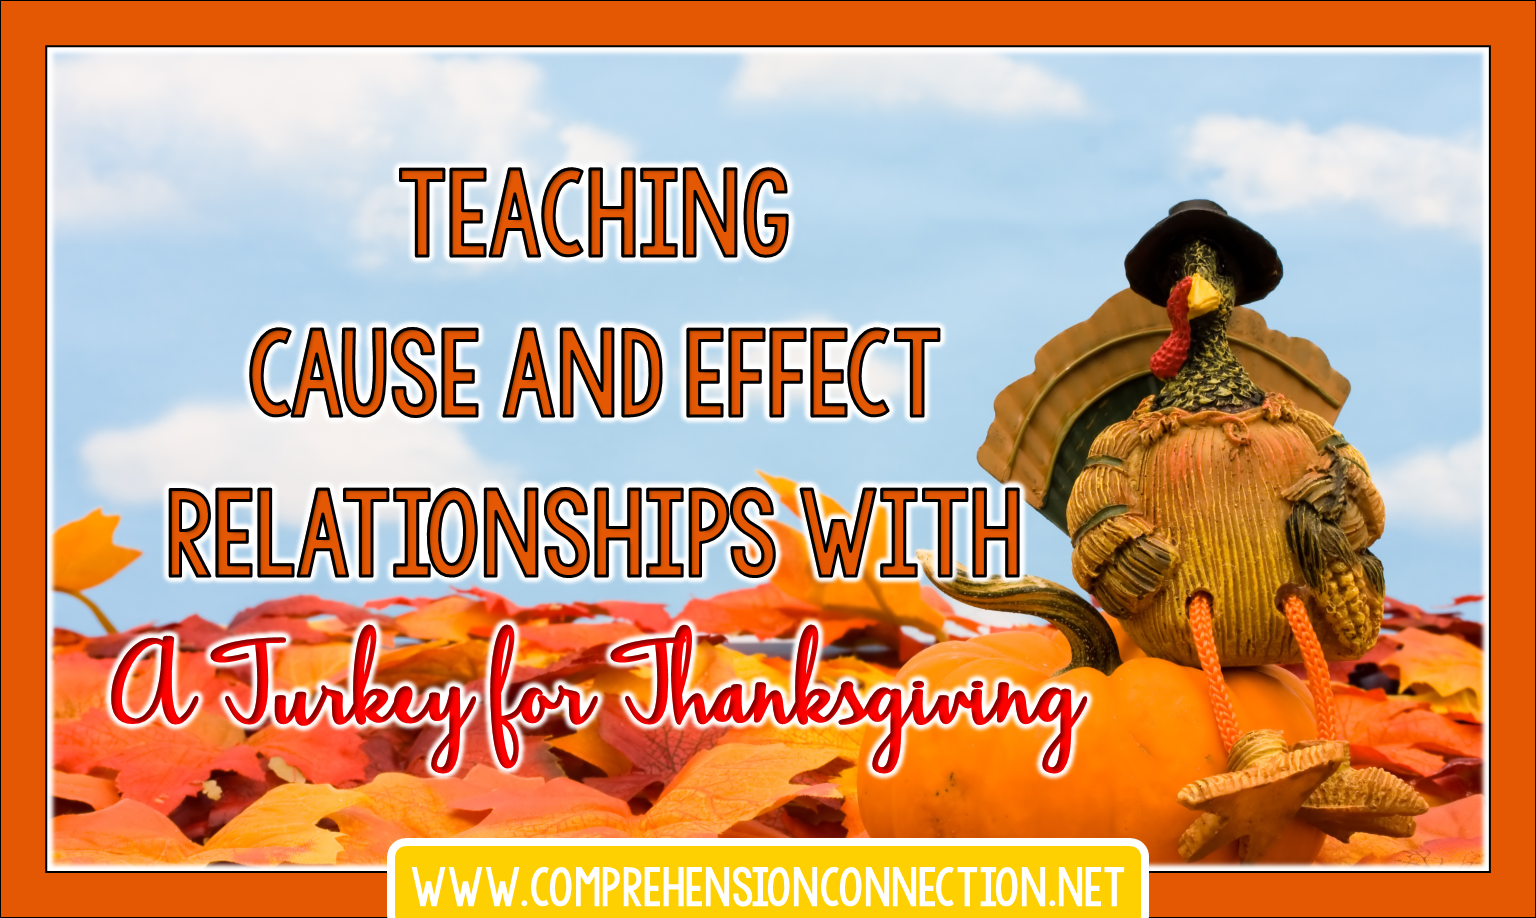 Teaching Cause And Effect Relationships With A Turkey For Thanksgiving